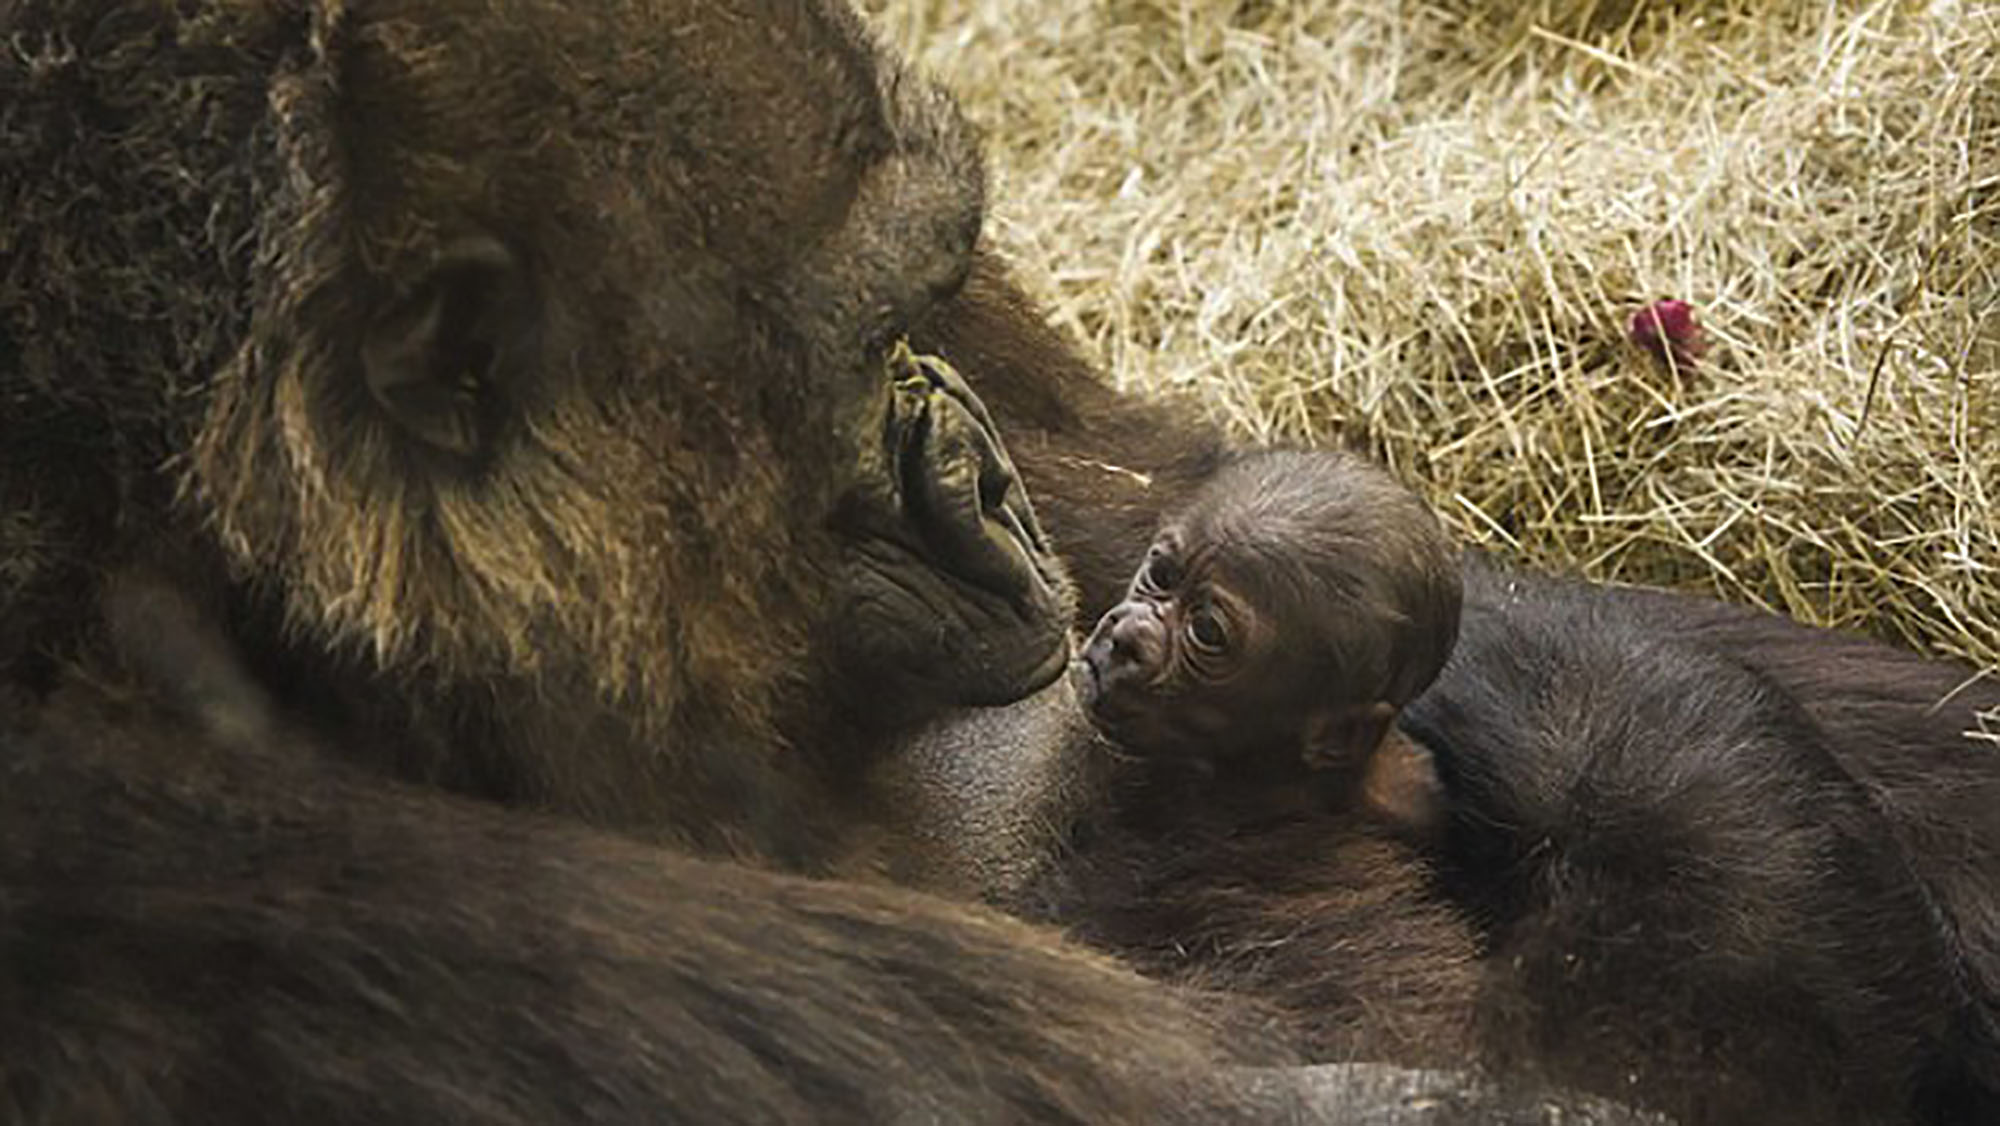 Amazing pictures of the moment gorilla feeds her newborn daughter